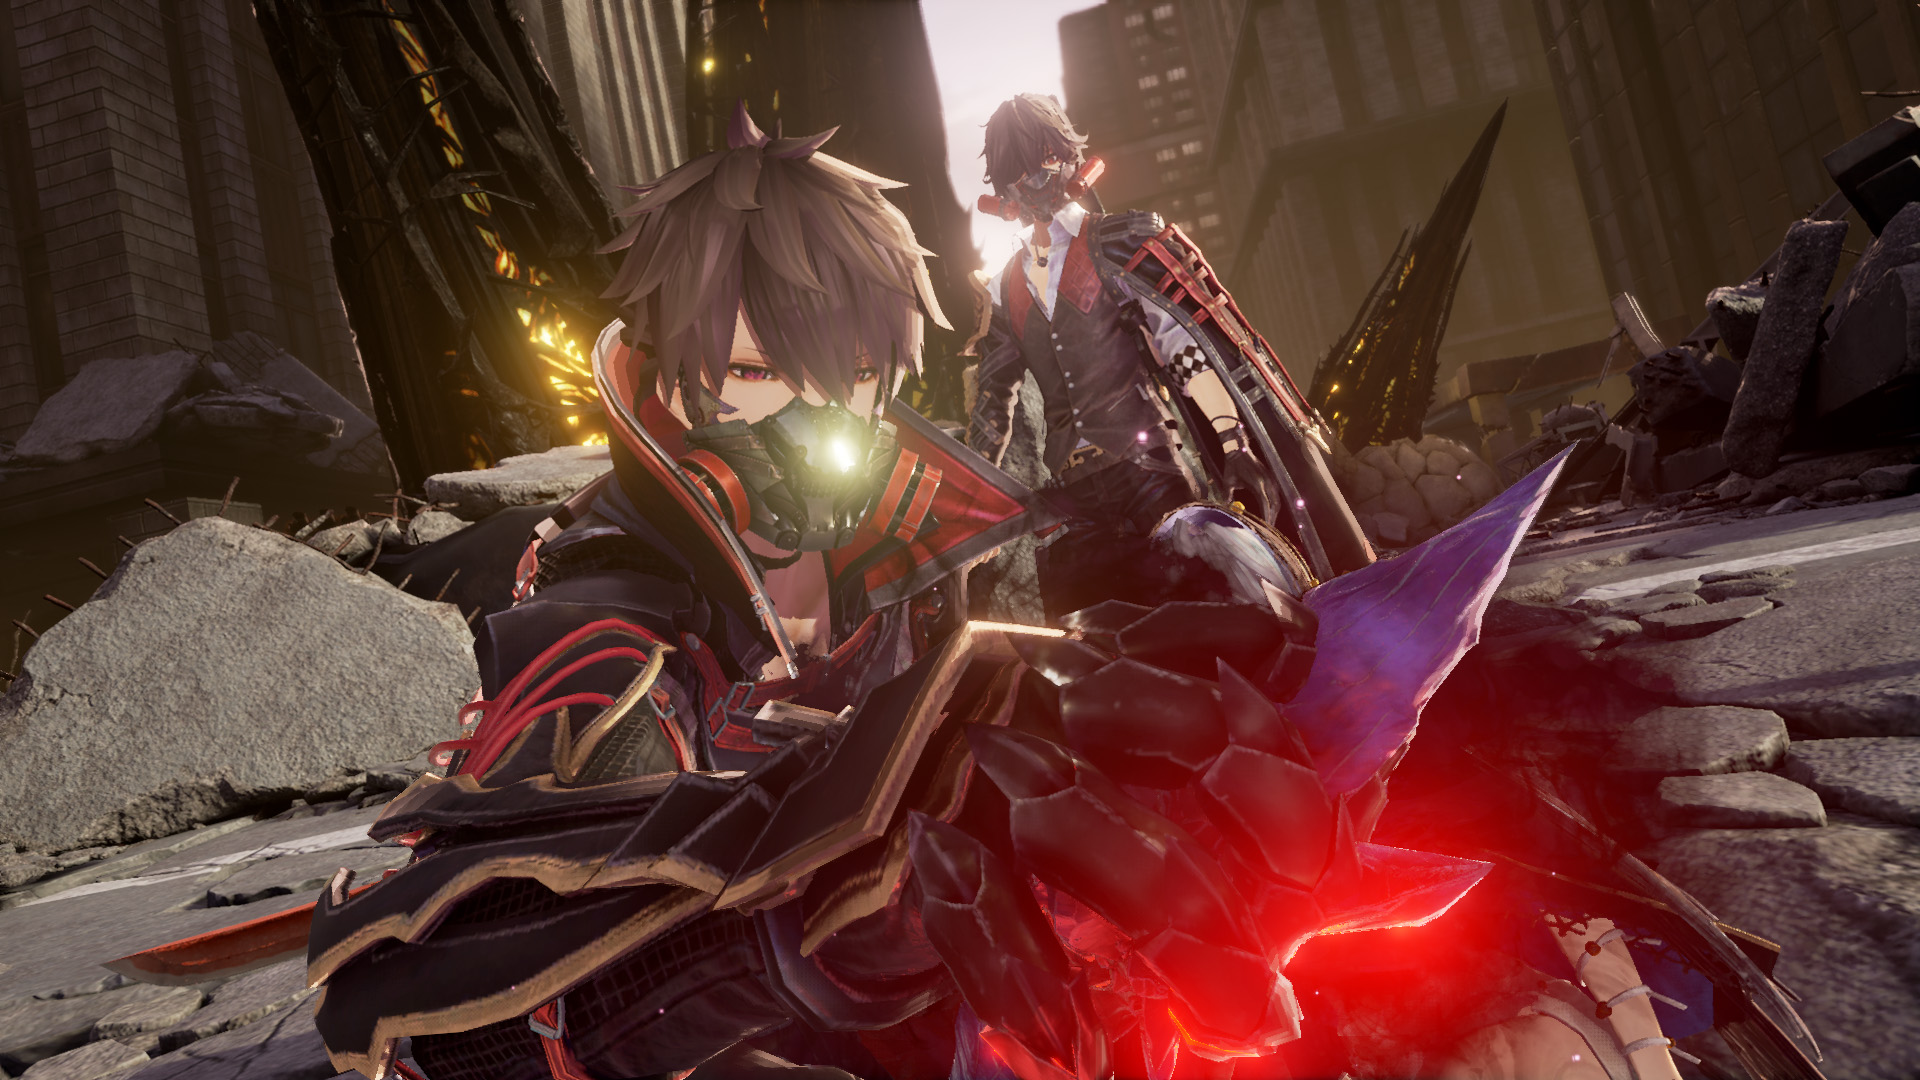 Buy Code Vein With Your Own Blood Pc Gamer